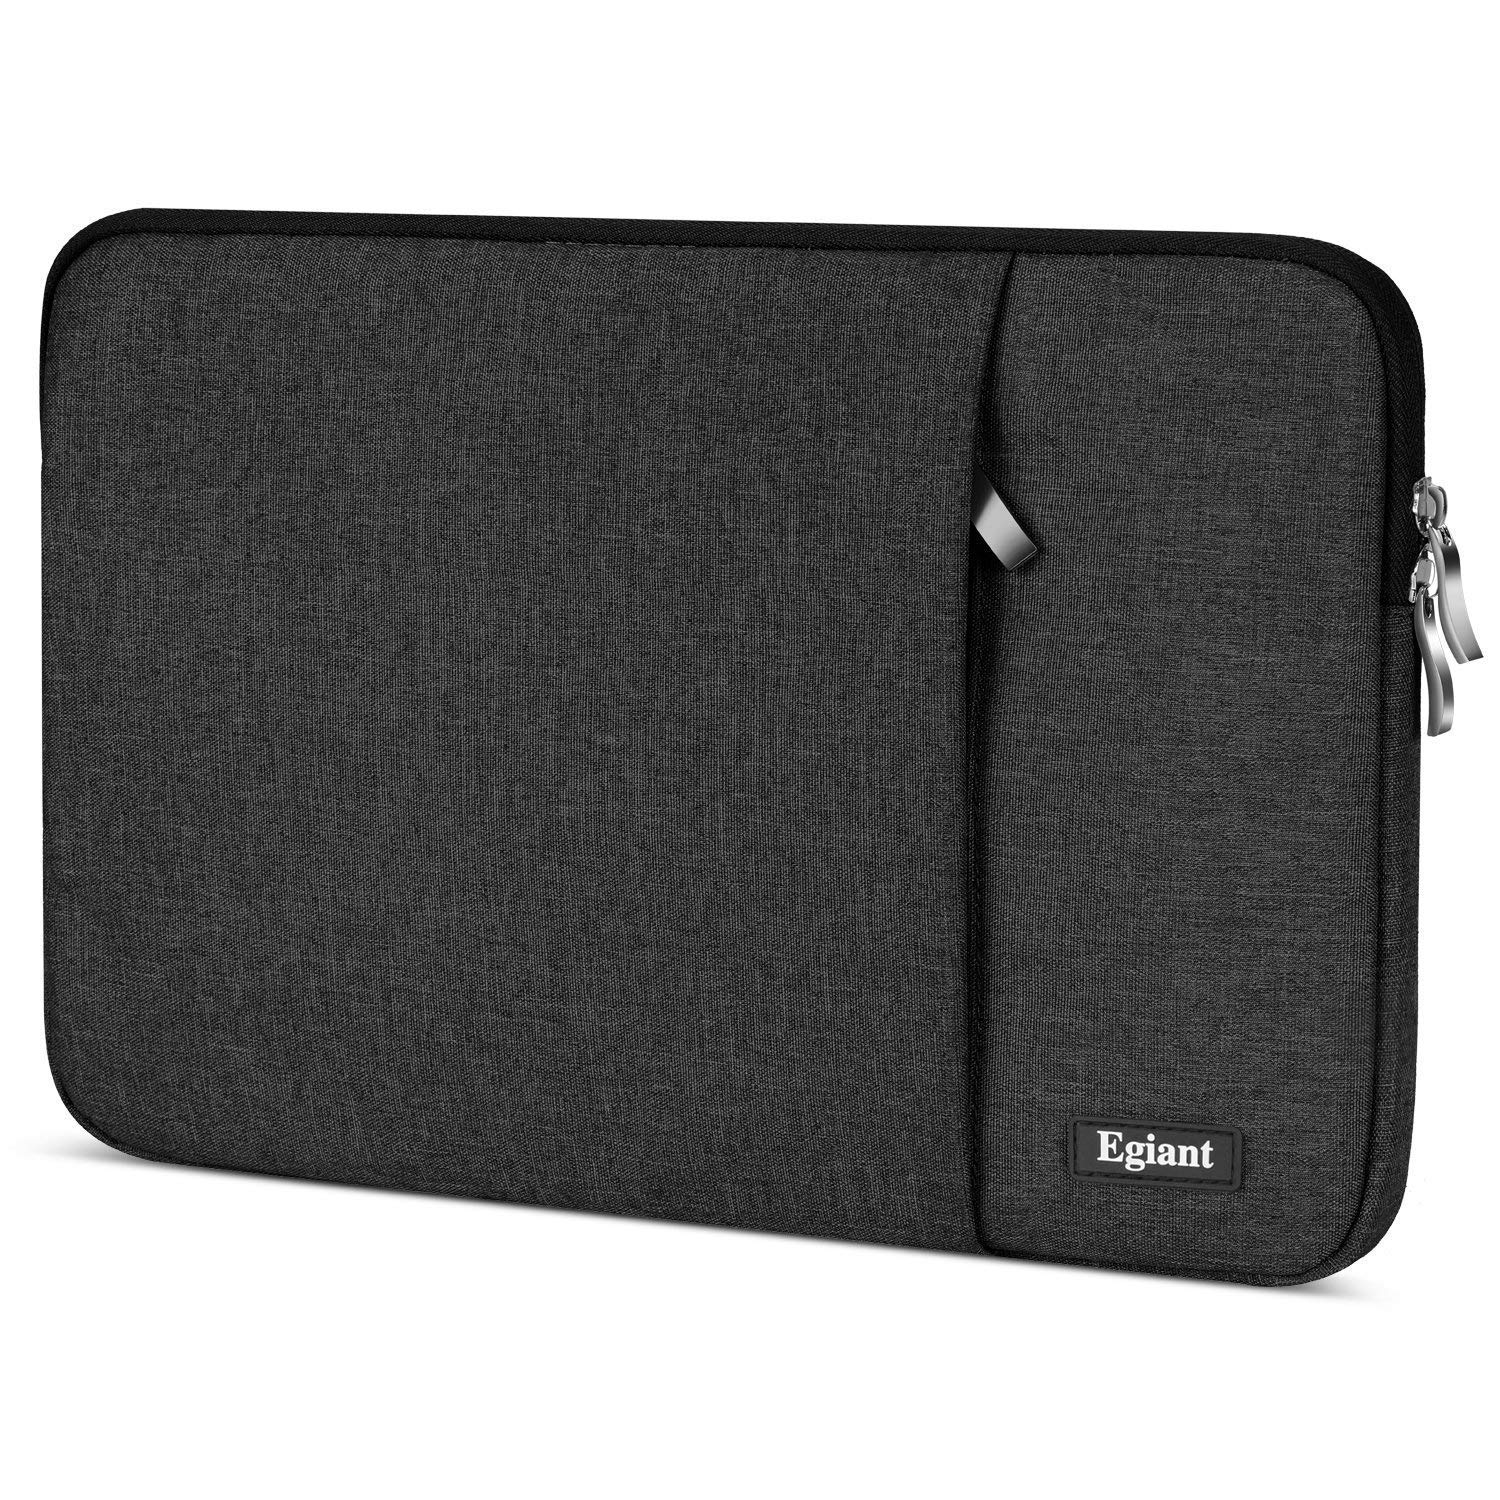 timeless design 7e457 529d4 Laptop Sleeve 11.6 Inch,Egiant Water Resistant Protective Case Bag  Compatible for Stream 11|Mac Air 11|Mac 12 Retina|iPad Tablet|Surface Pro 3  ...